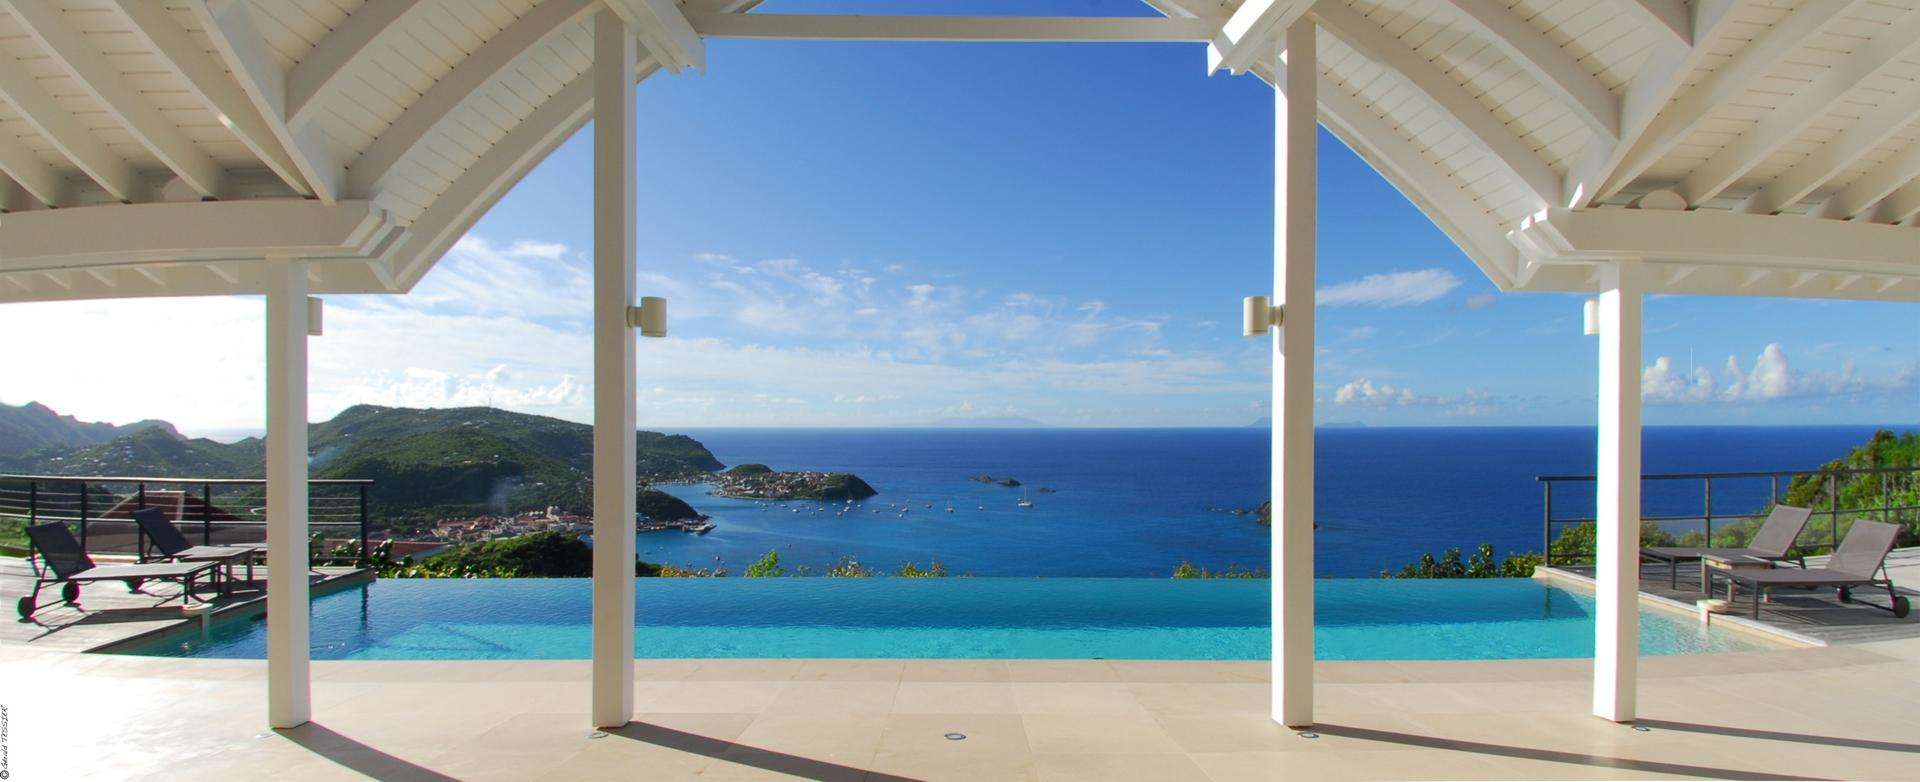 Luxury villa rentals caribbean - St barthelemy - Colombier - The View - Image 1/20